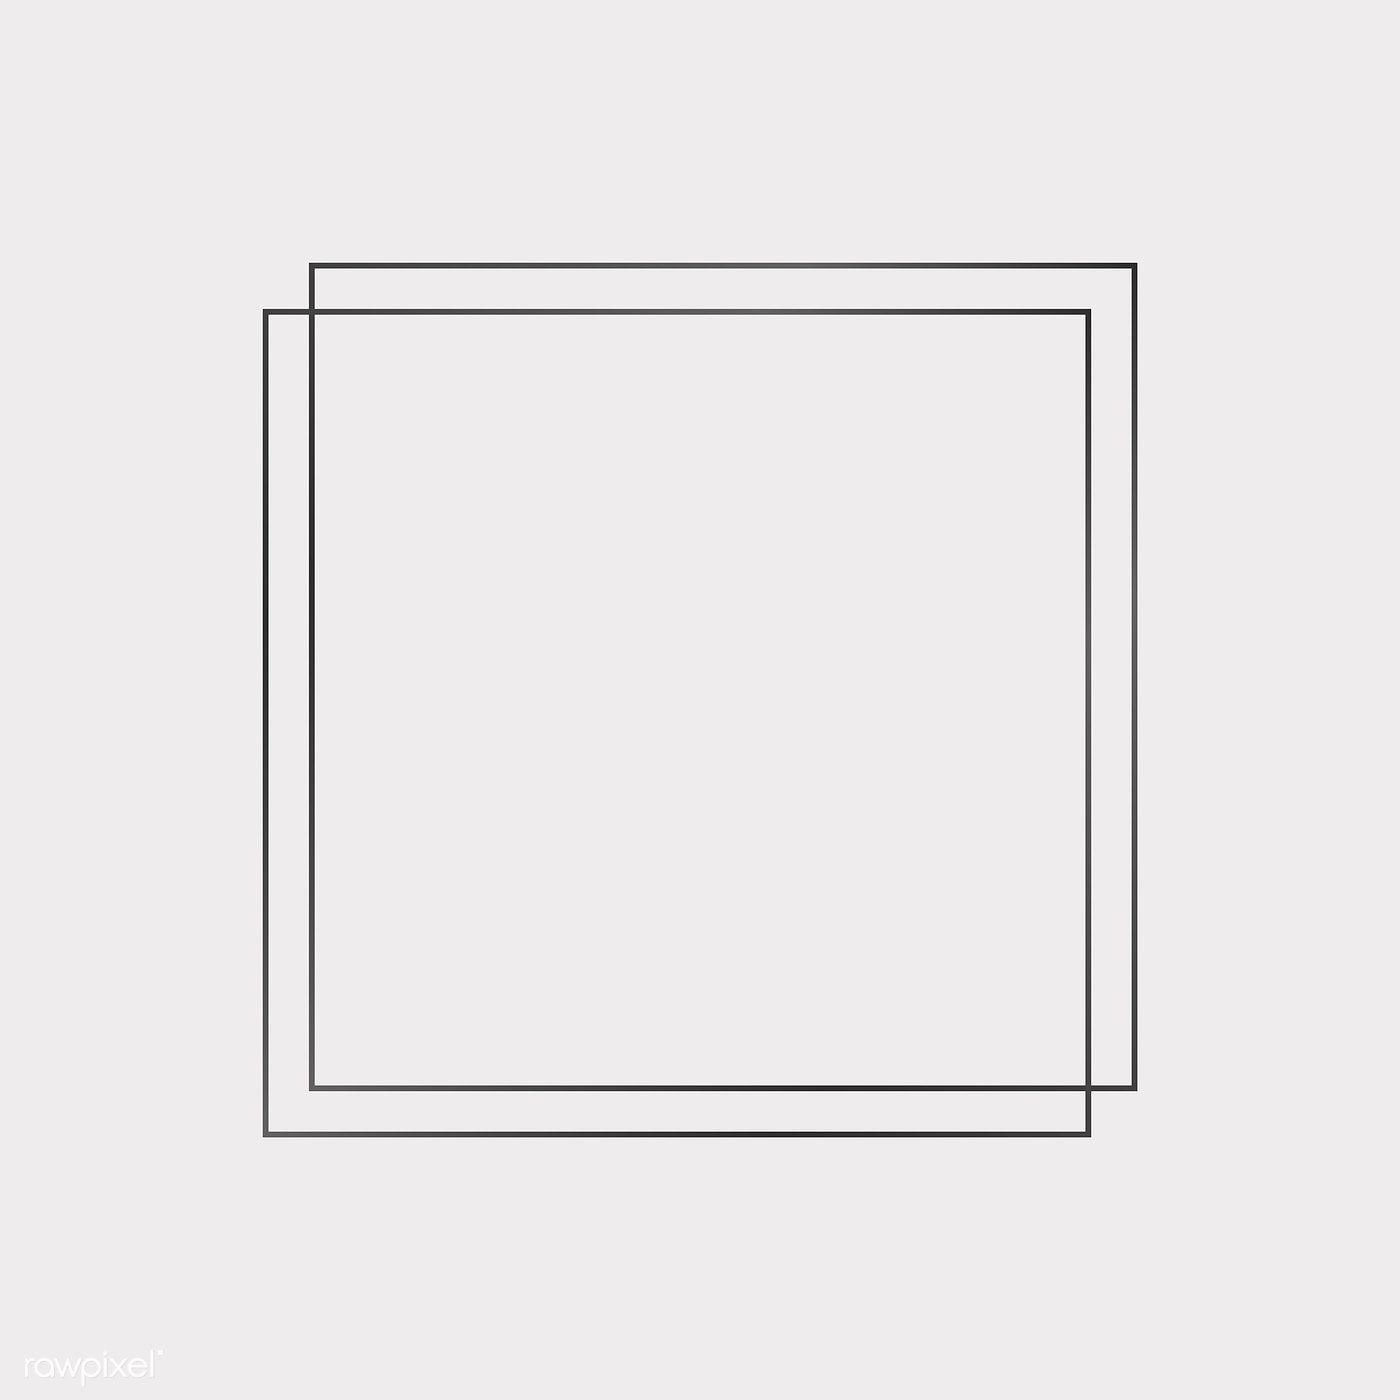 Square Black Frames On A Blank Background Vector Free Image By Rawpixel Com Sasi Blank Background Instagram Frame Template Photo Collage Template